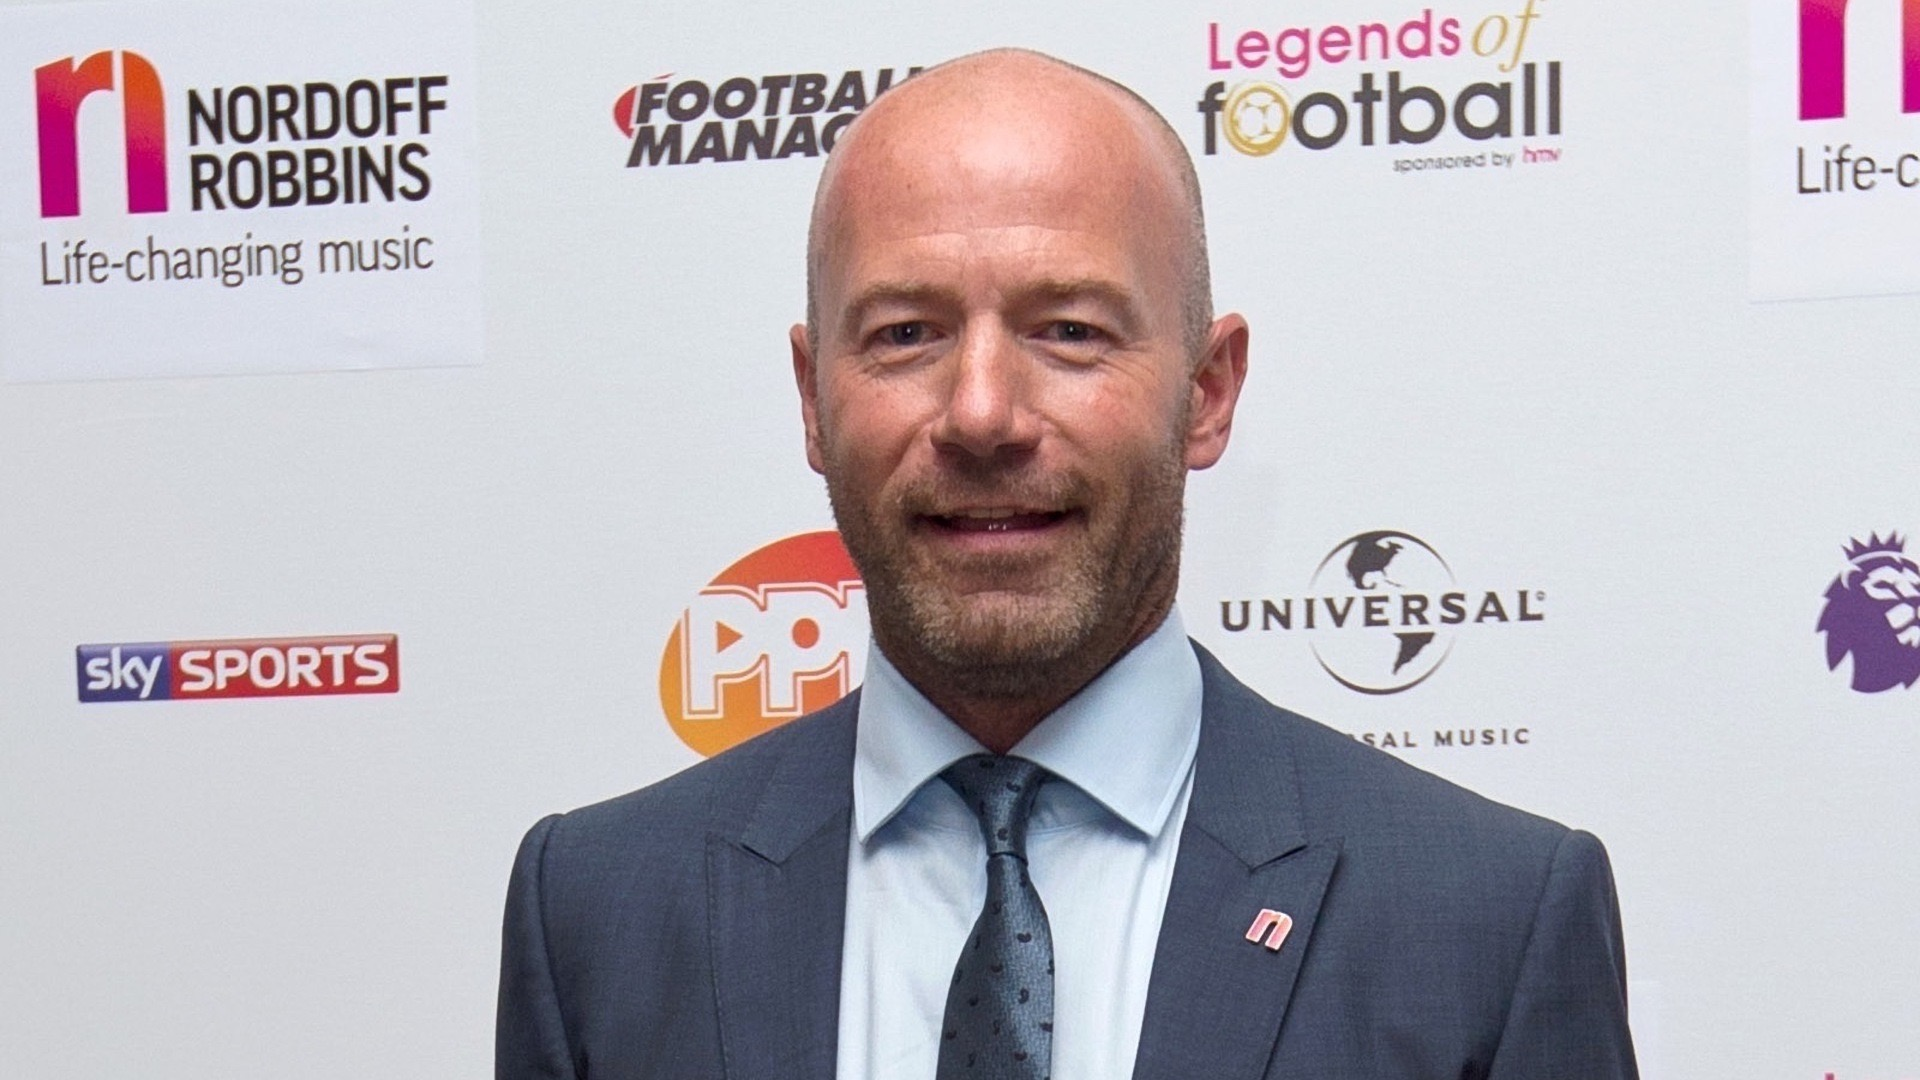 Newcastle and England legend Alan Shearer.